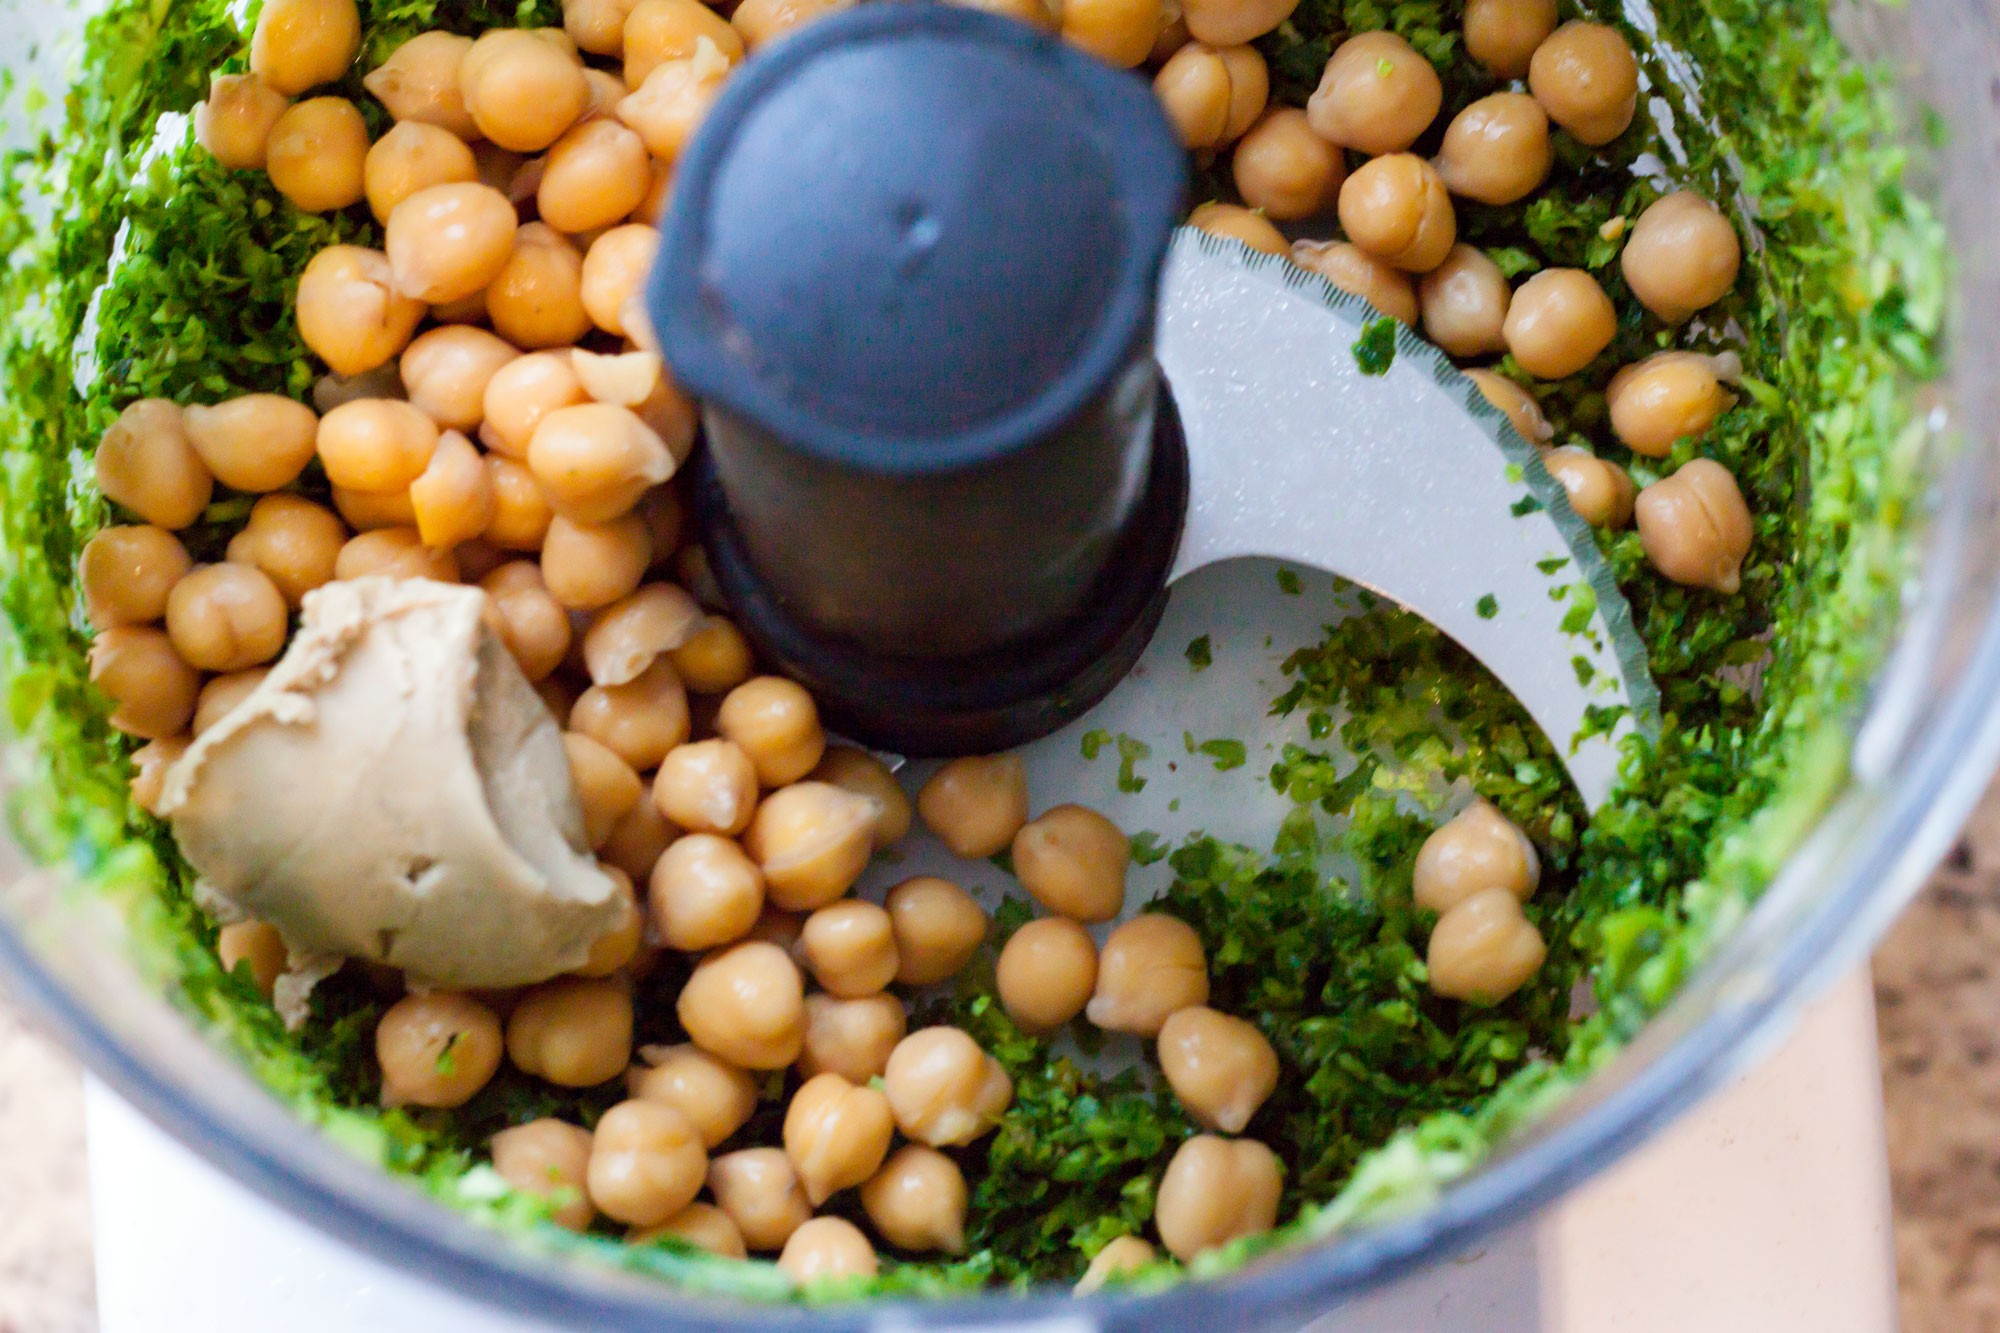 hummus-food-waste-chicp10